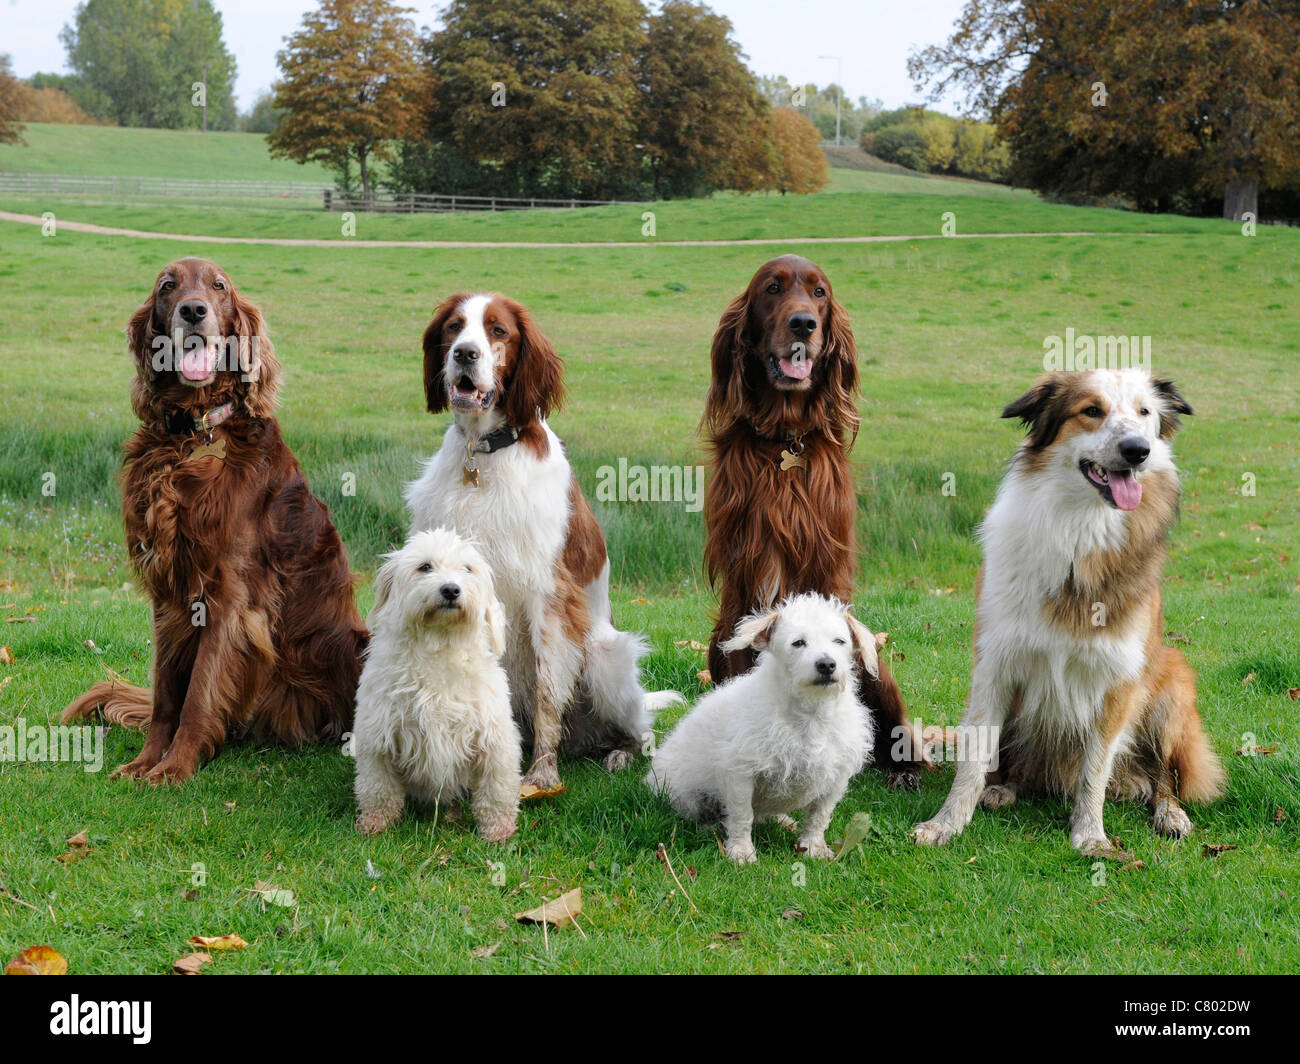 A group of 6 obedient dogs all sitting down, different breeds - Stock Image